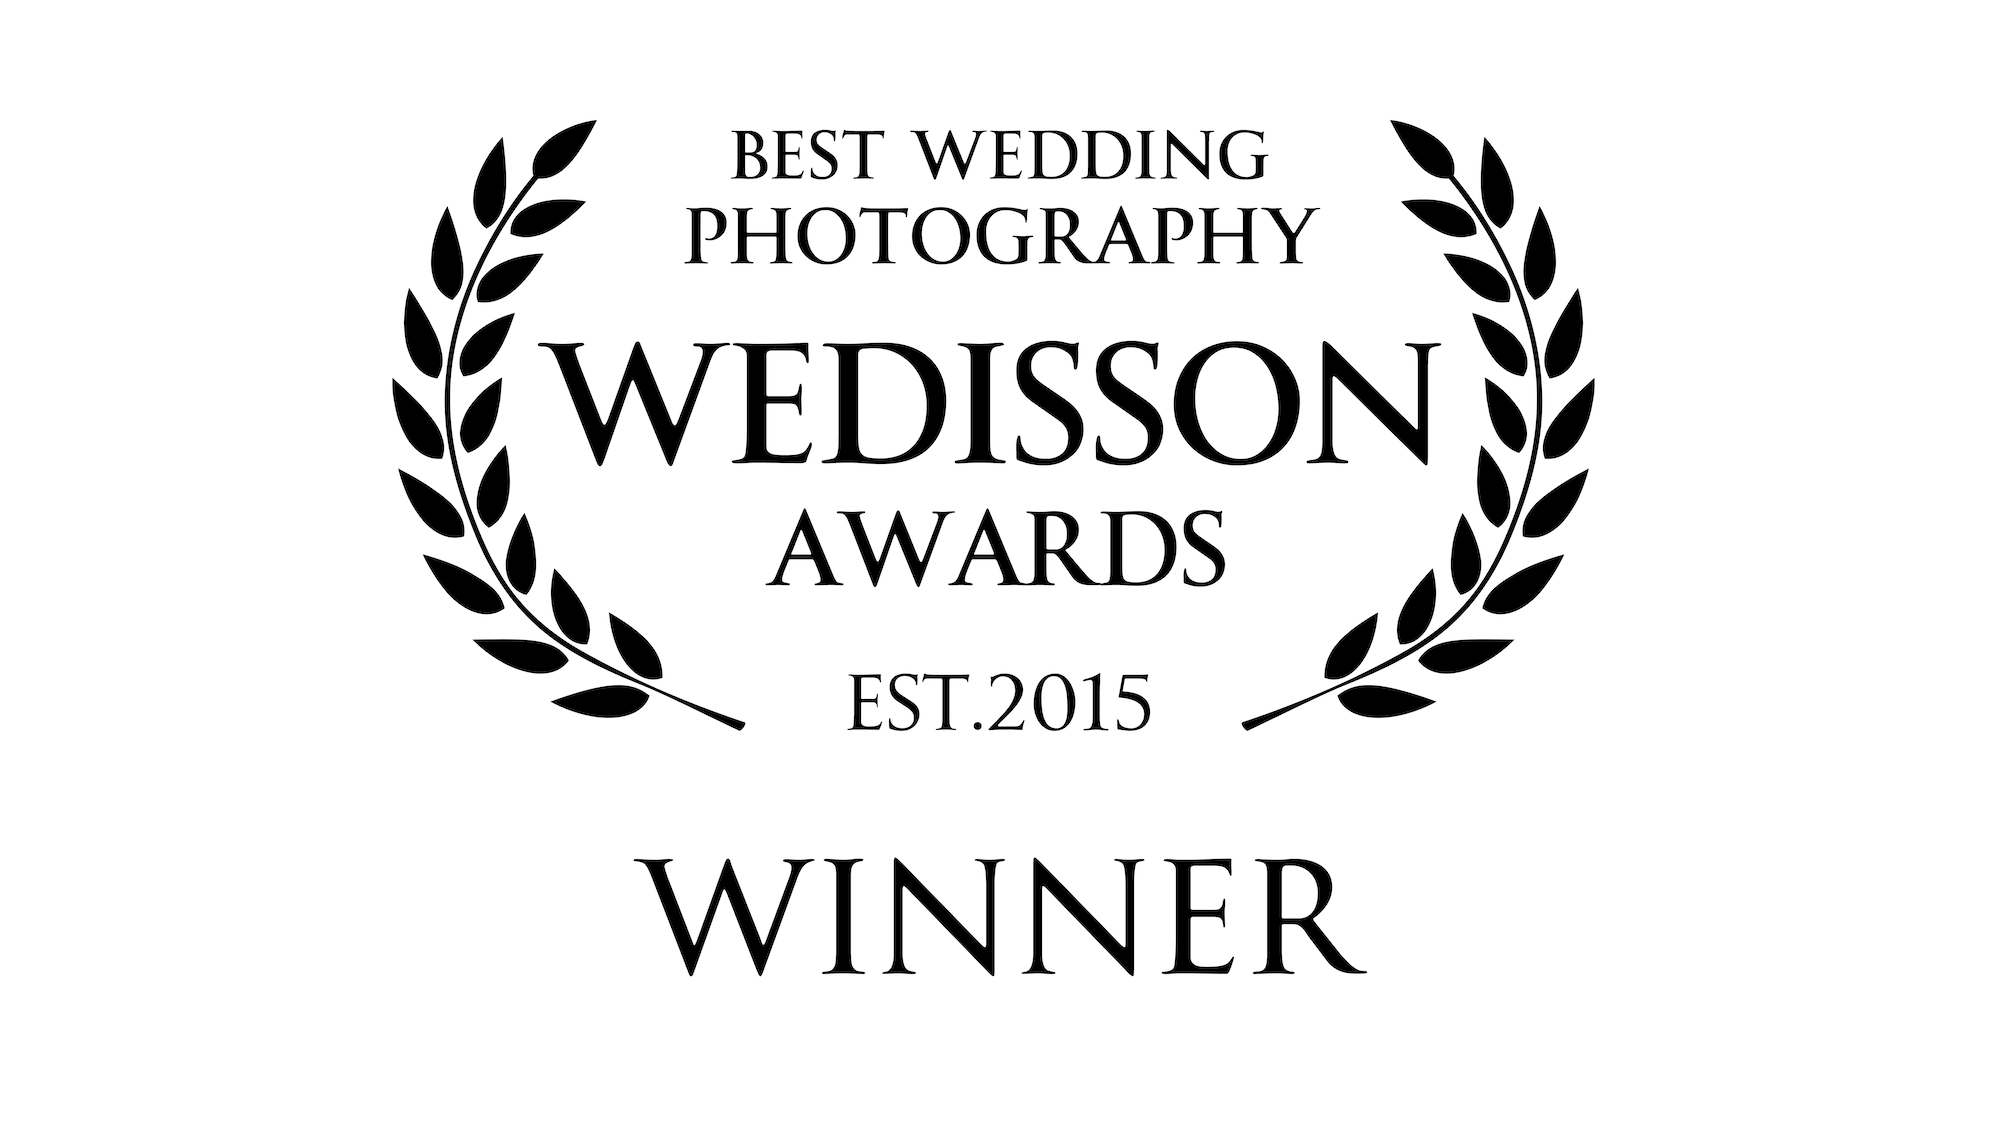 Incredibly proud to have won a Wedisson Award for Best Wedding Photography for three of my recent images -